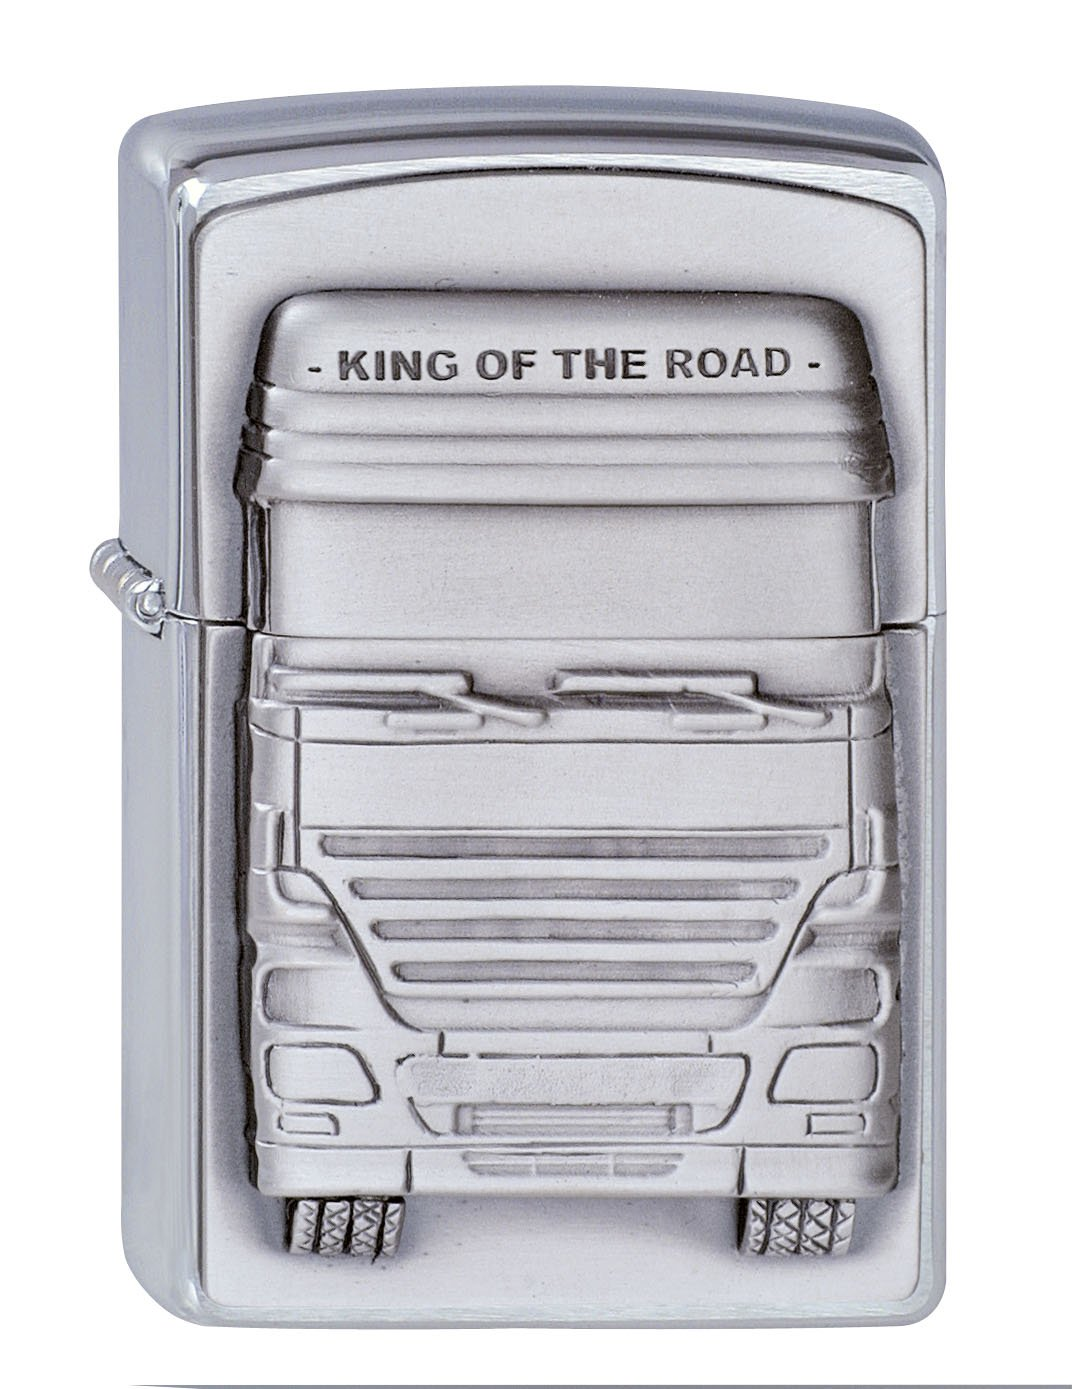 ZIPPO Truckers King of the Road Emblem Windproof Pocket Lighter – Chrome,